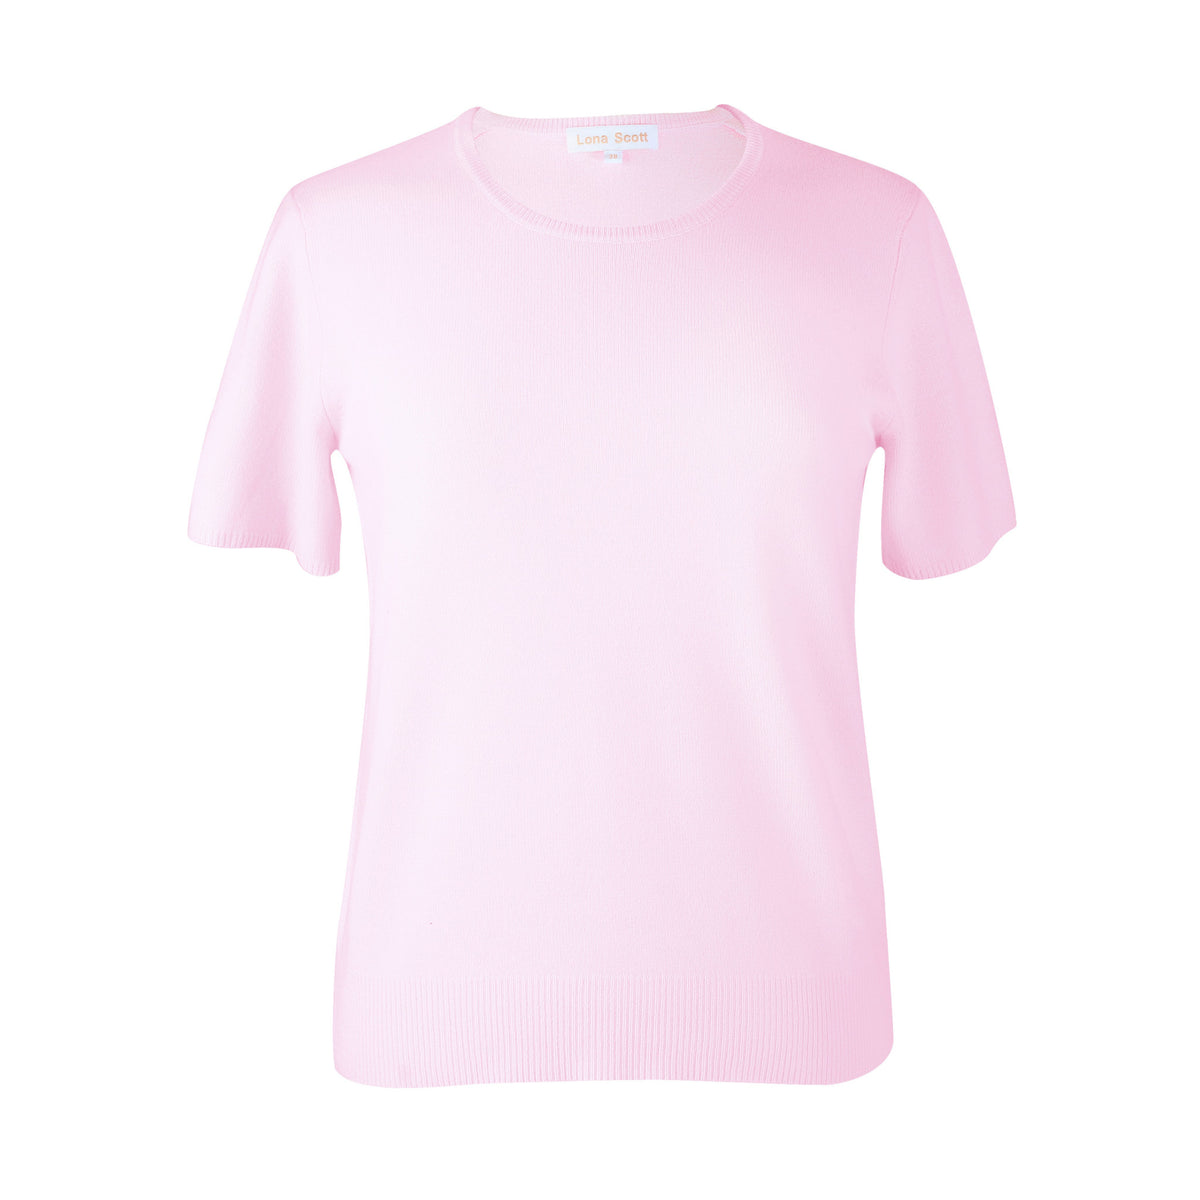 Ladies Pink Cashmere Sweater | Short Sleeve | The Cashmere Choice London